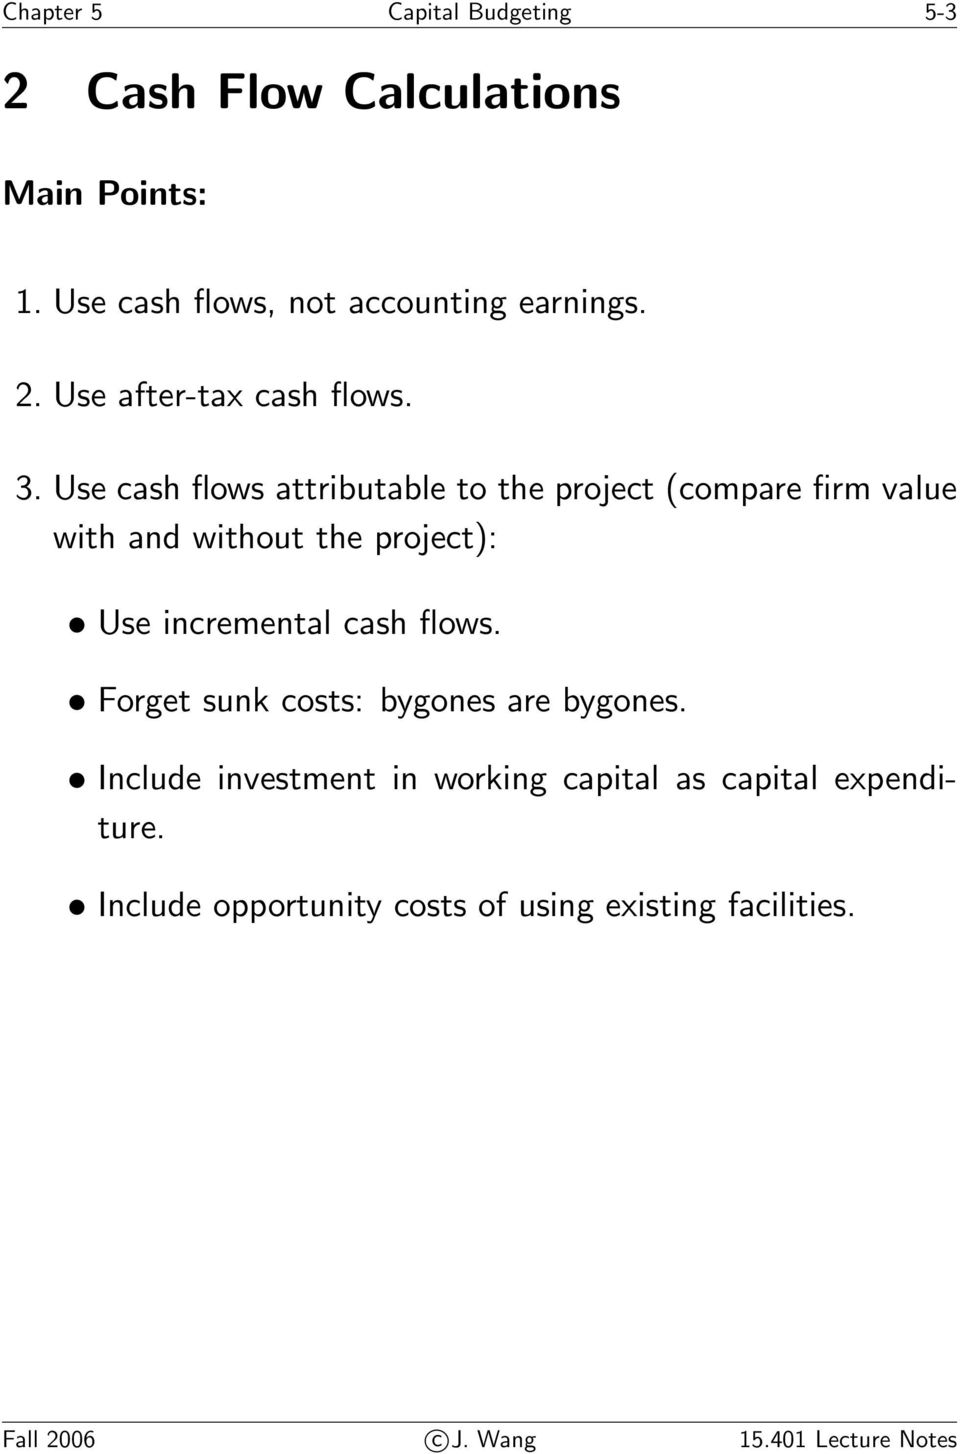 cash flows. Forget sunk costs: bygones are bygones. Include investment in working capital as capital expenditure.